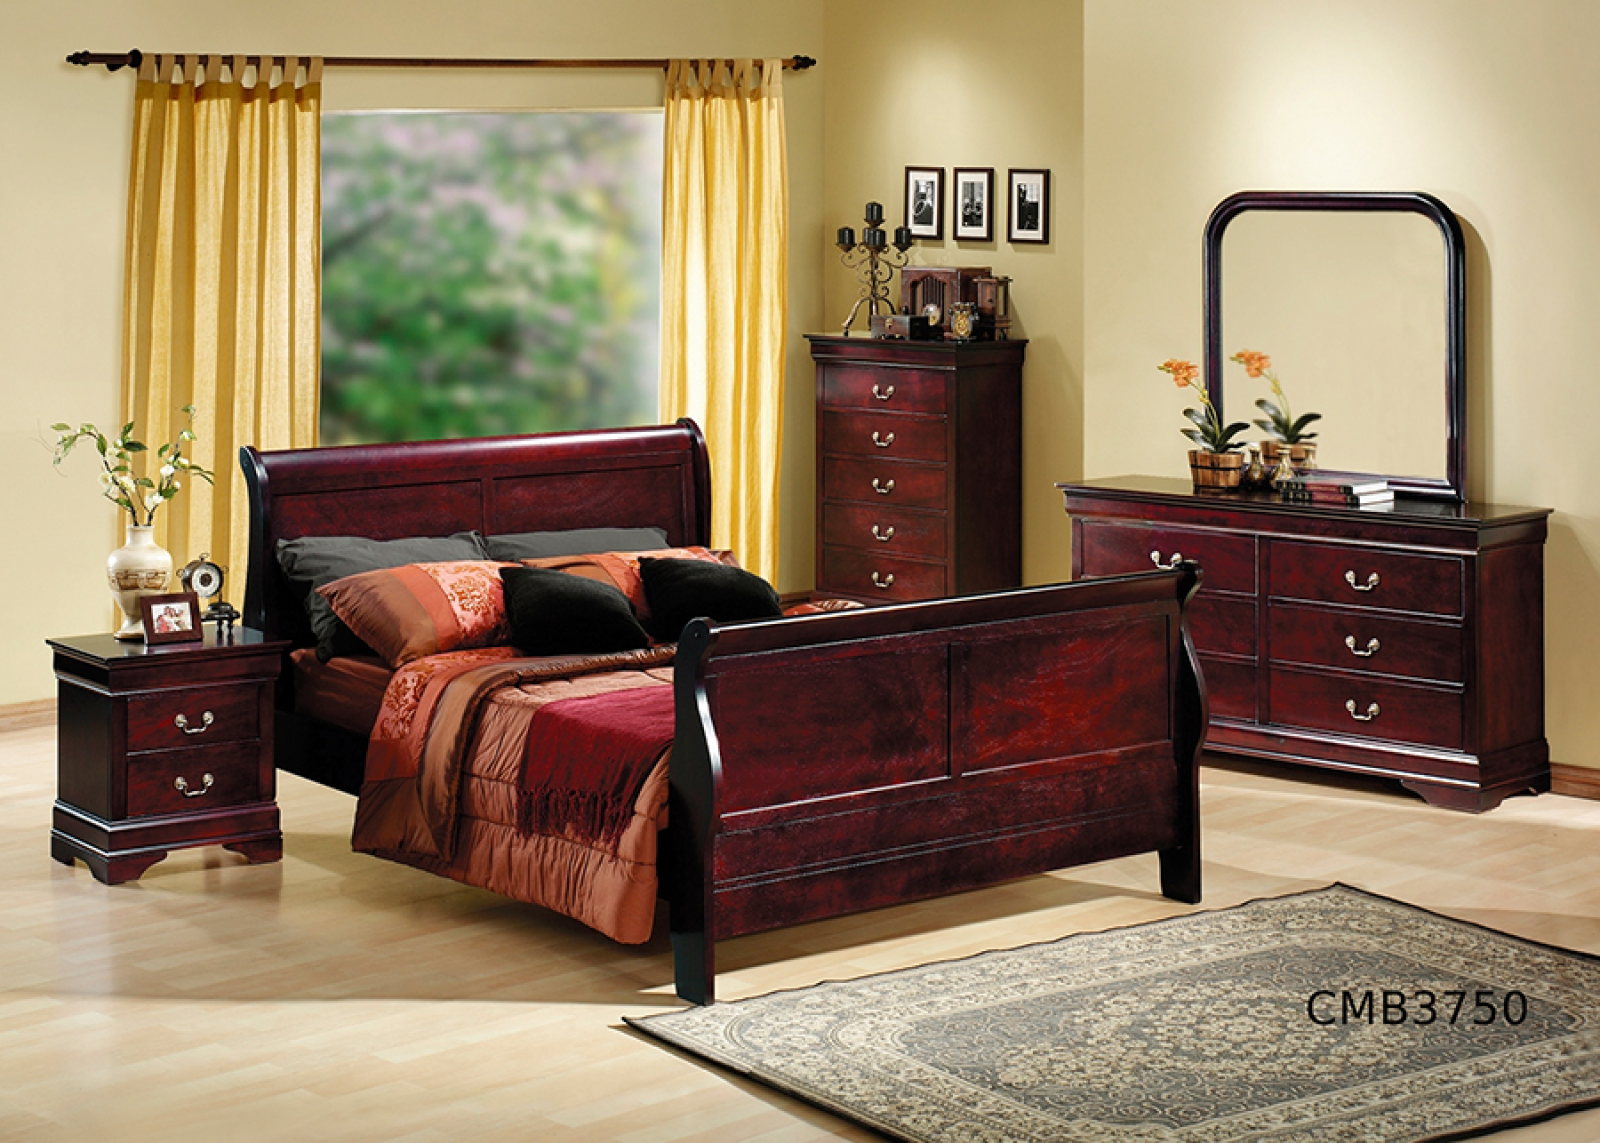 louis philippe bedroom cherry jasons furniture outlet 15928 | louis philippe bedroom cherry